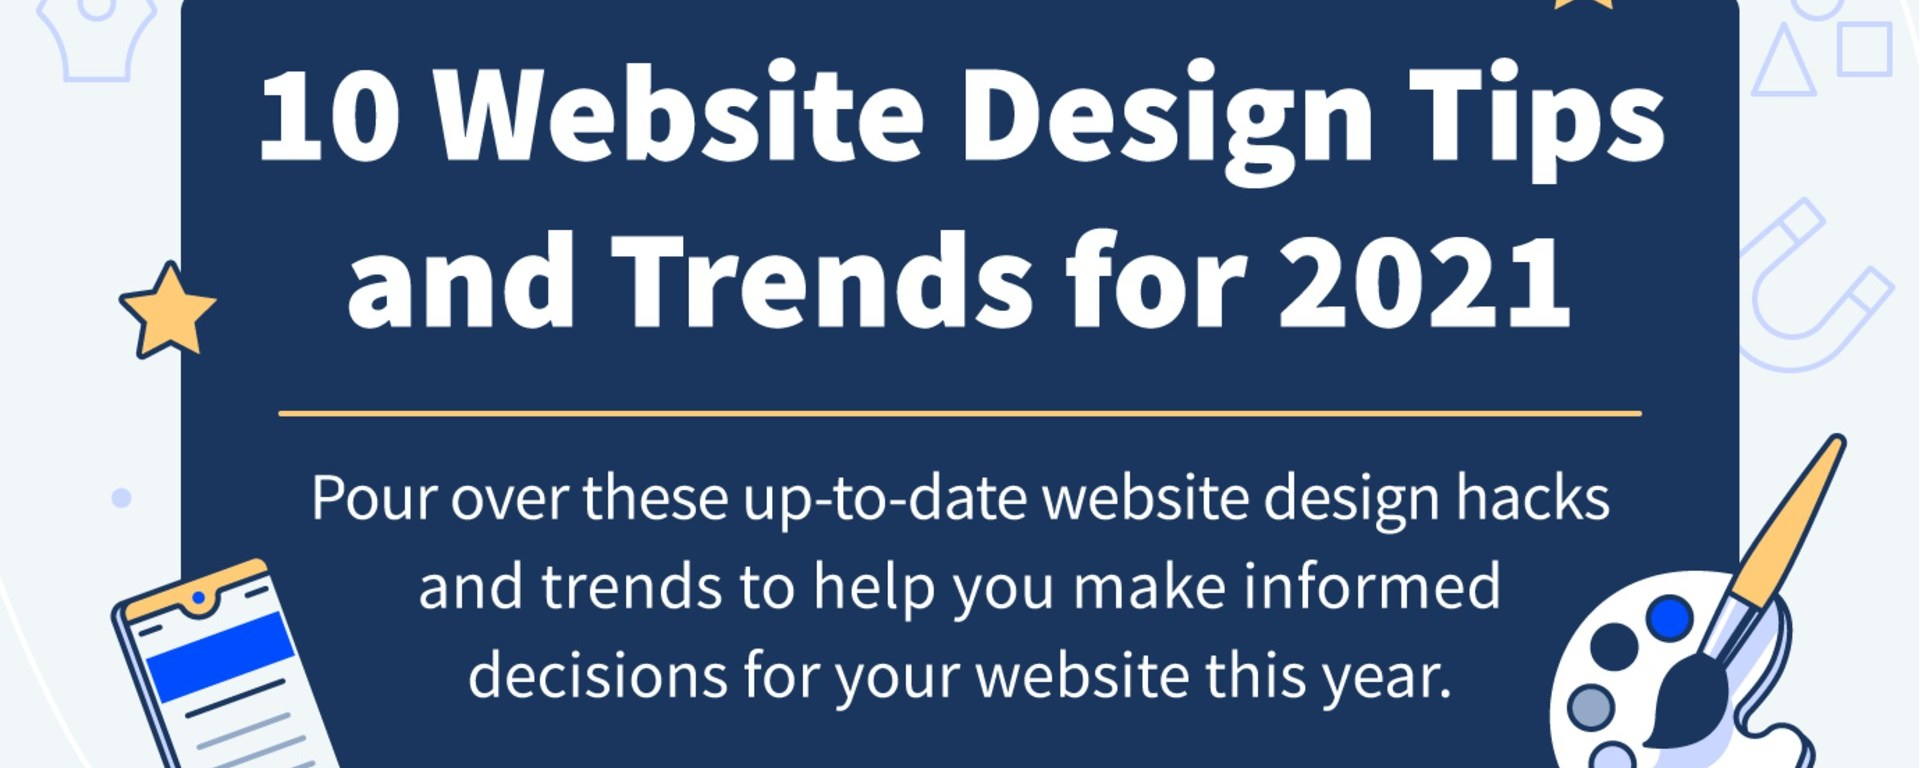 Thumb 10 Website Design Tips and Trends for 2021